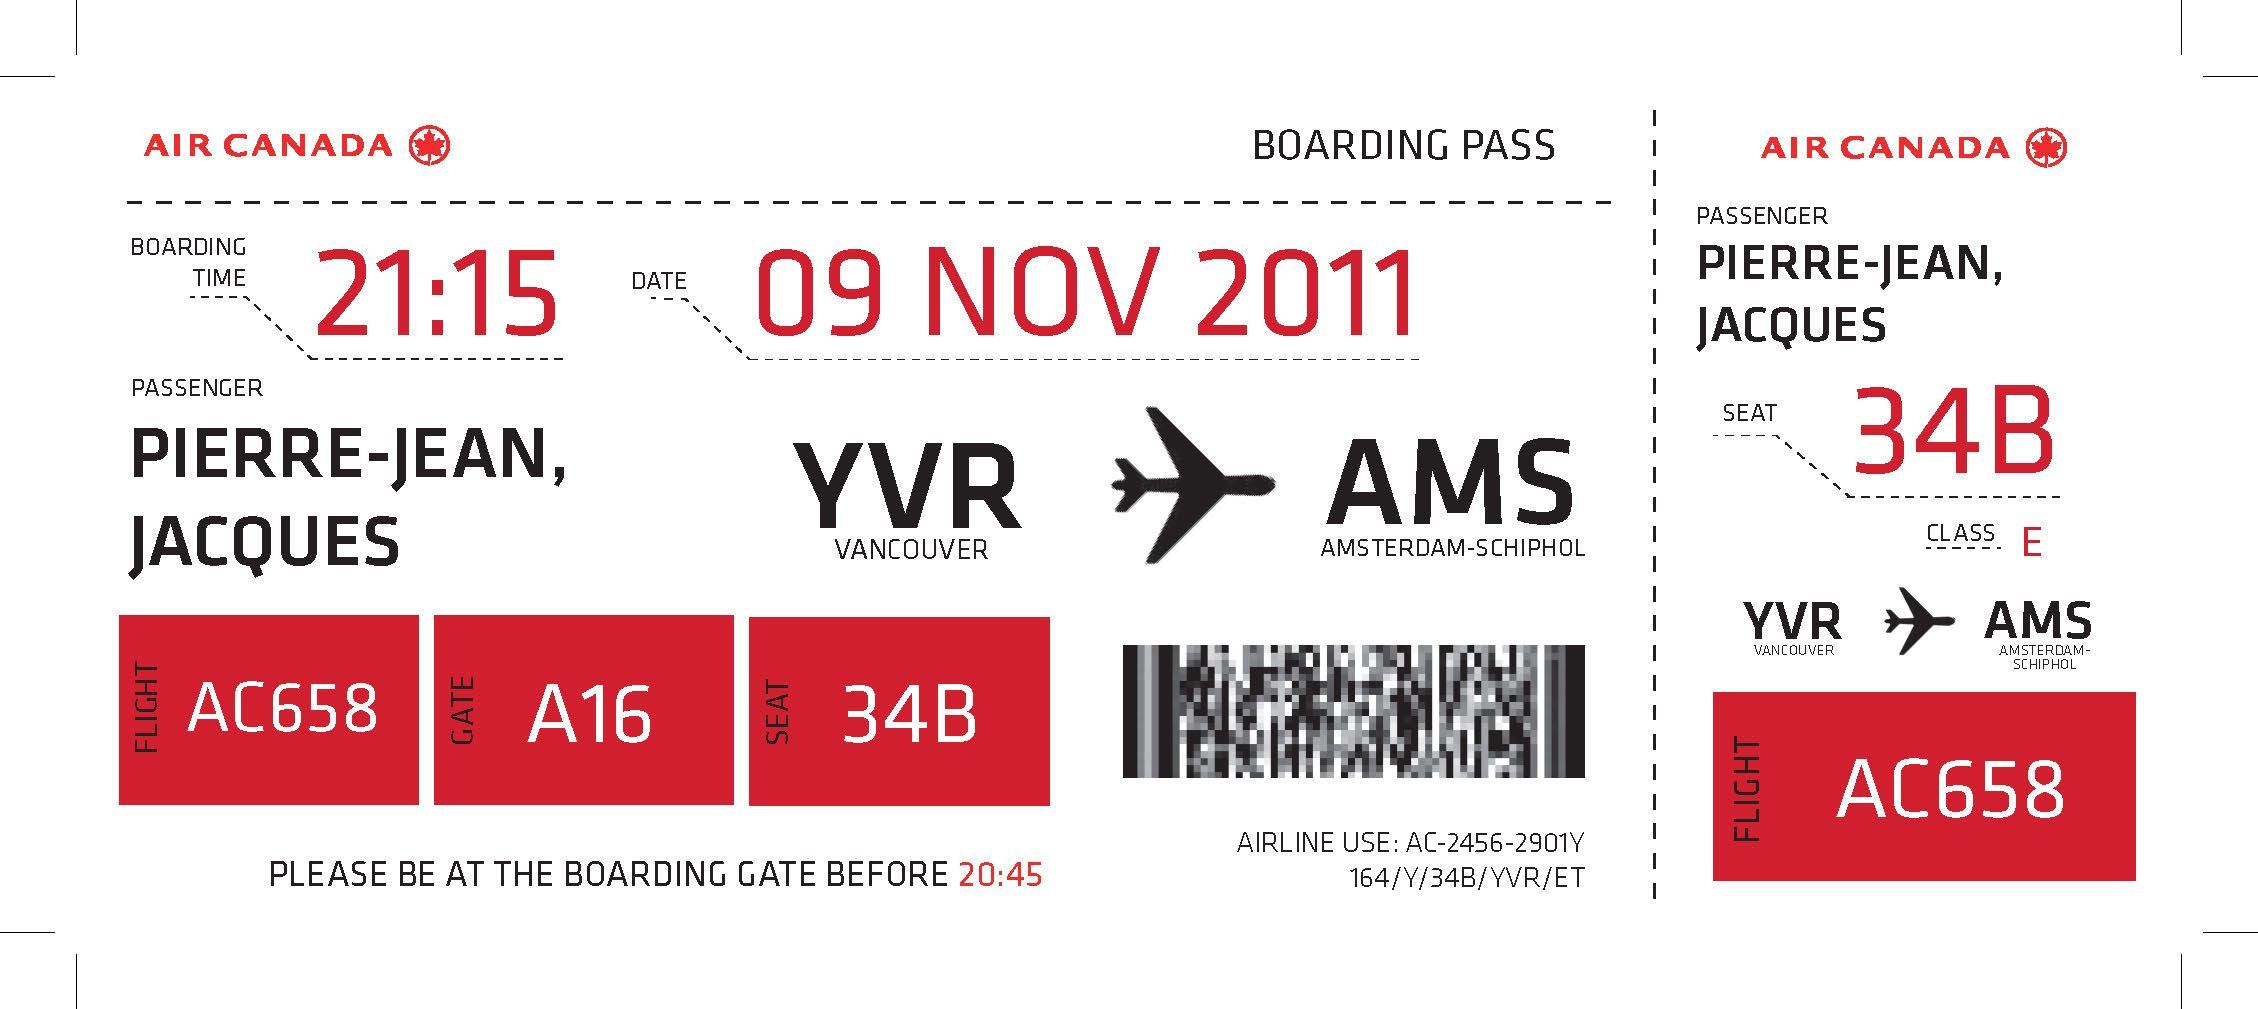 Coupon Number Aircanada Ticket Google Search Boarding Pass